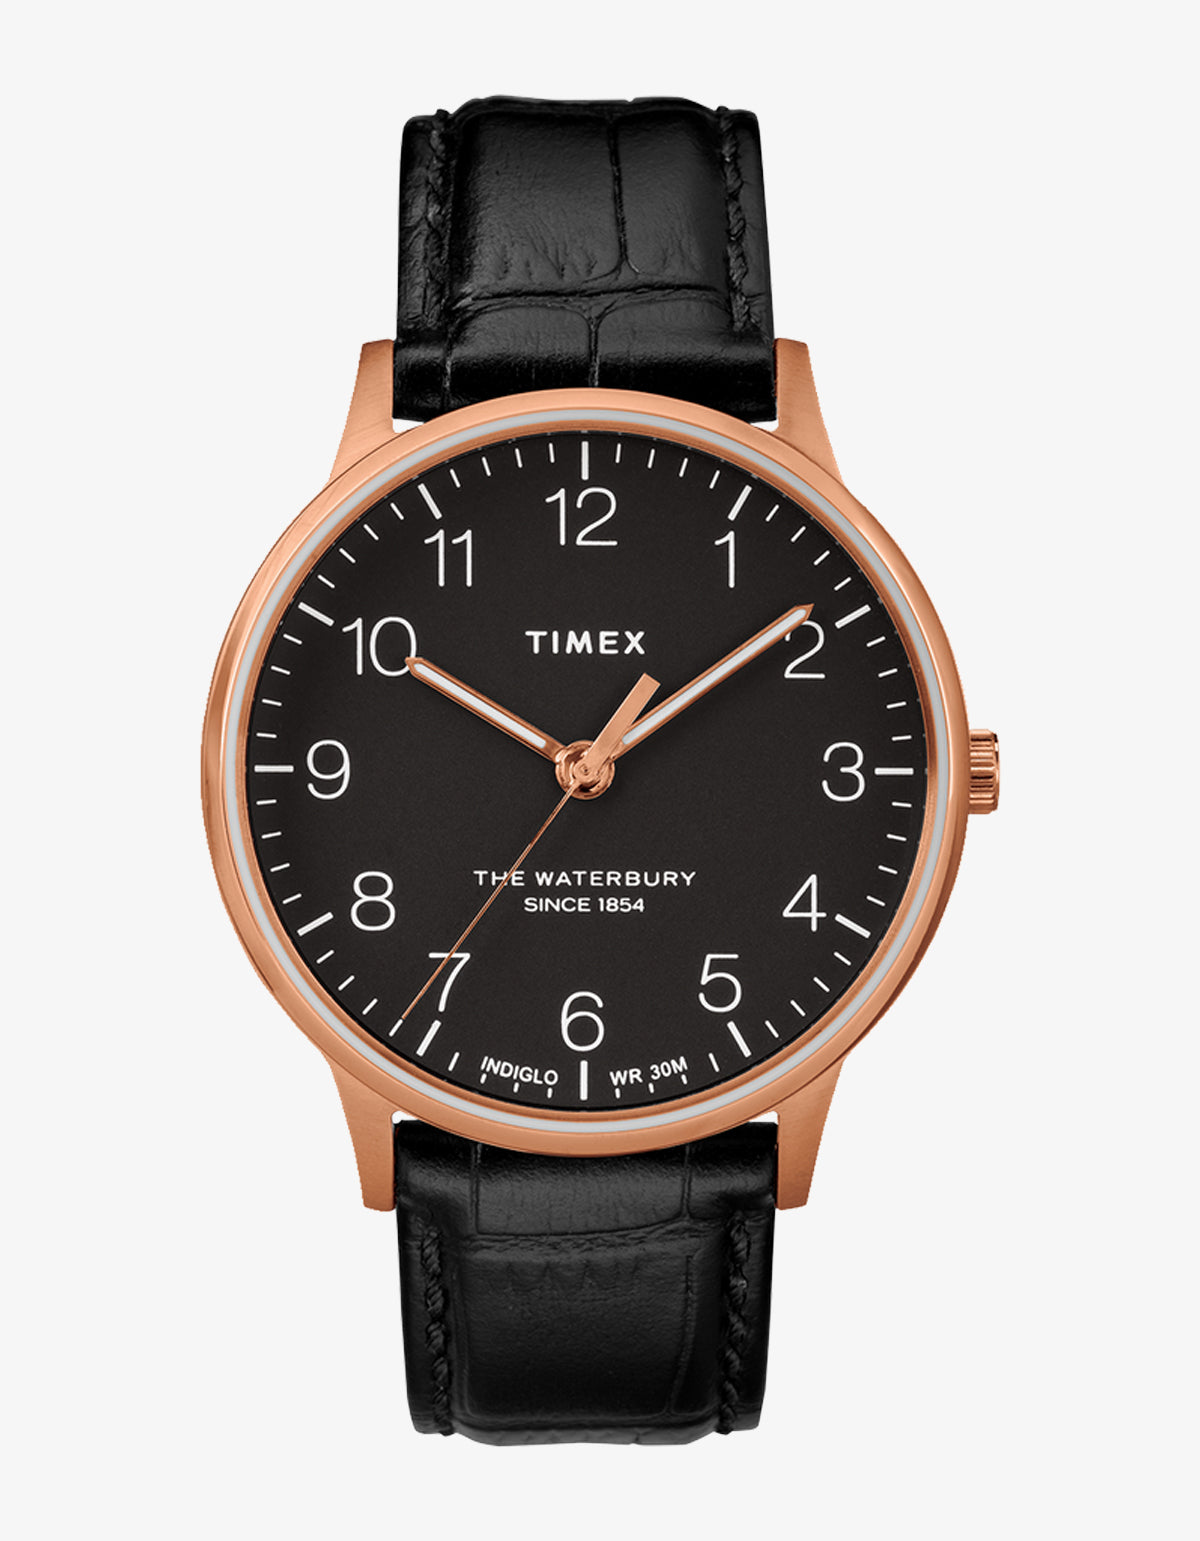 Timex Waterbury Classic 40 Watch Rose, Black, Black